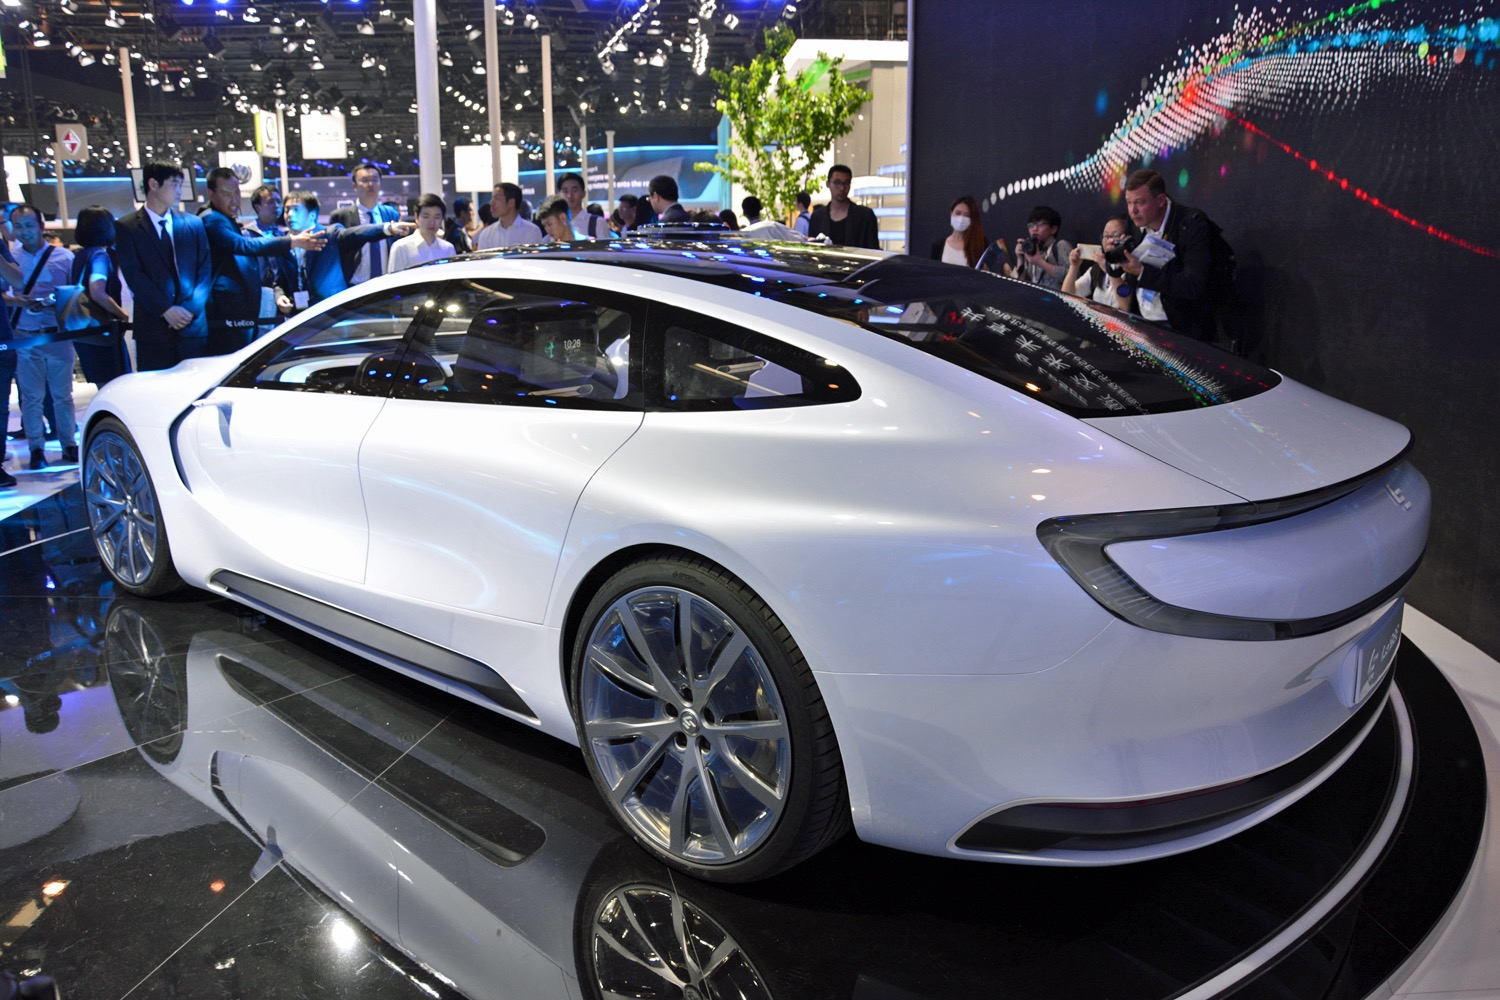 LeEco to invest $3 billion in electric car facility